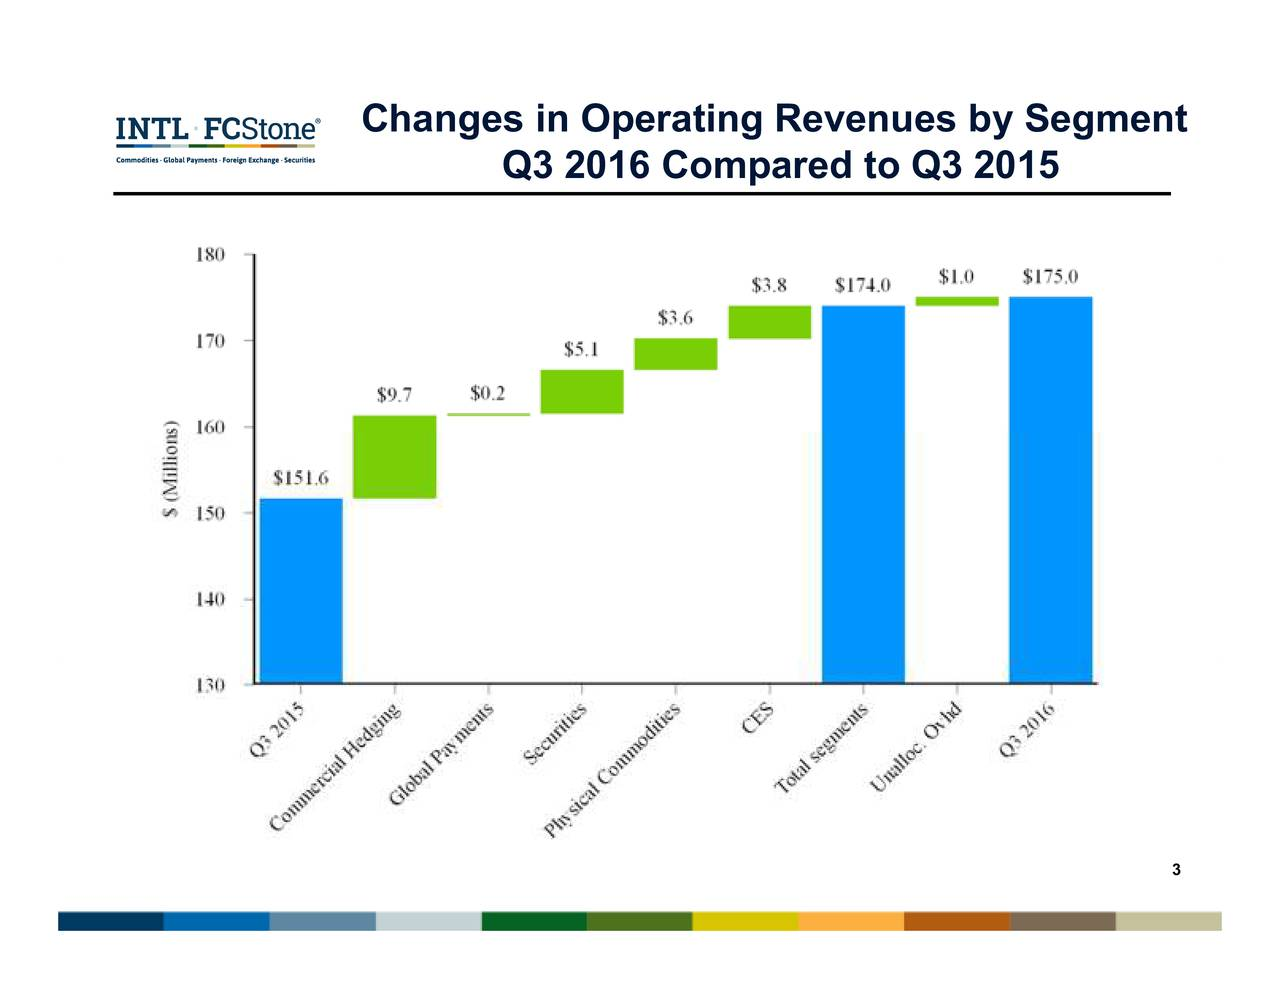 Q3 2016 Compared to Q3 2015 Changes in Operating Revenues by Segment